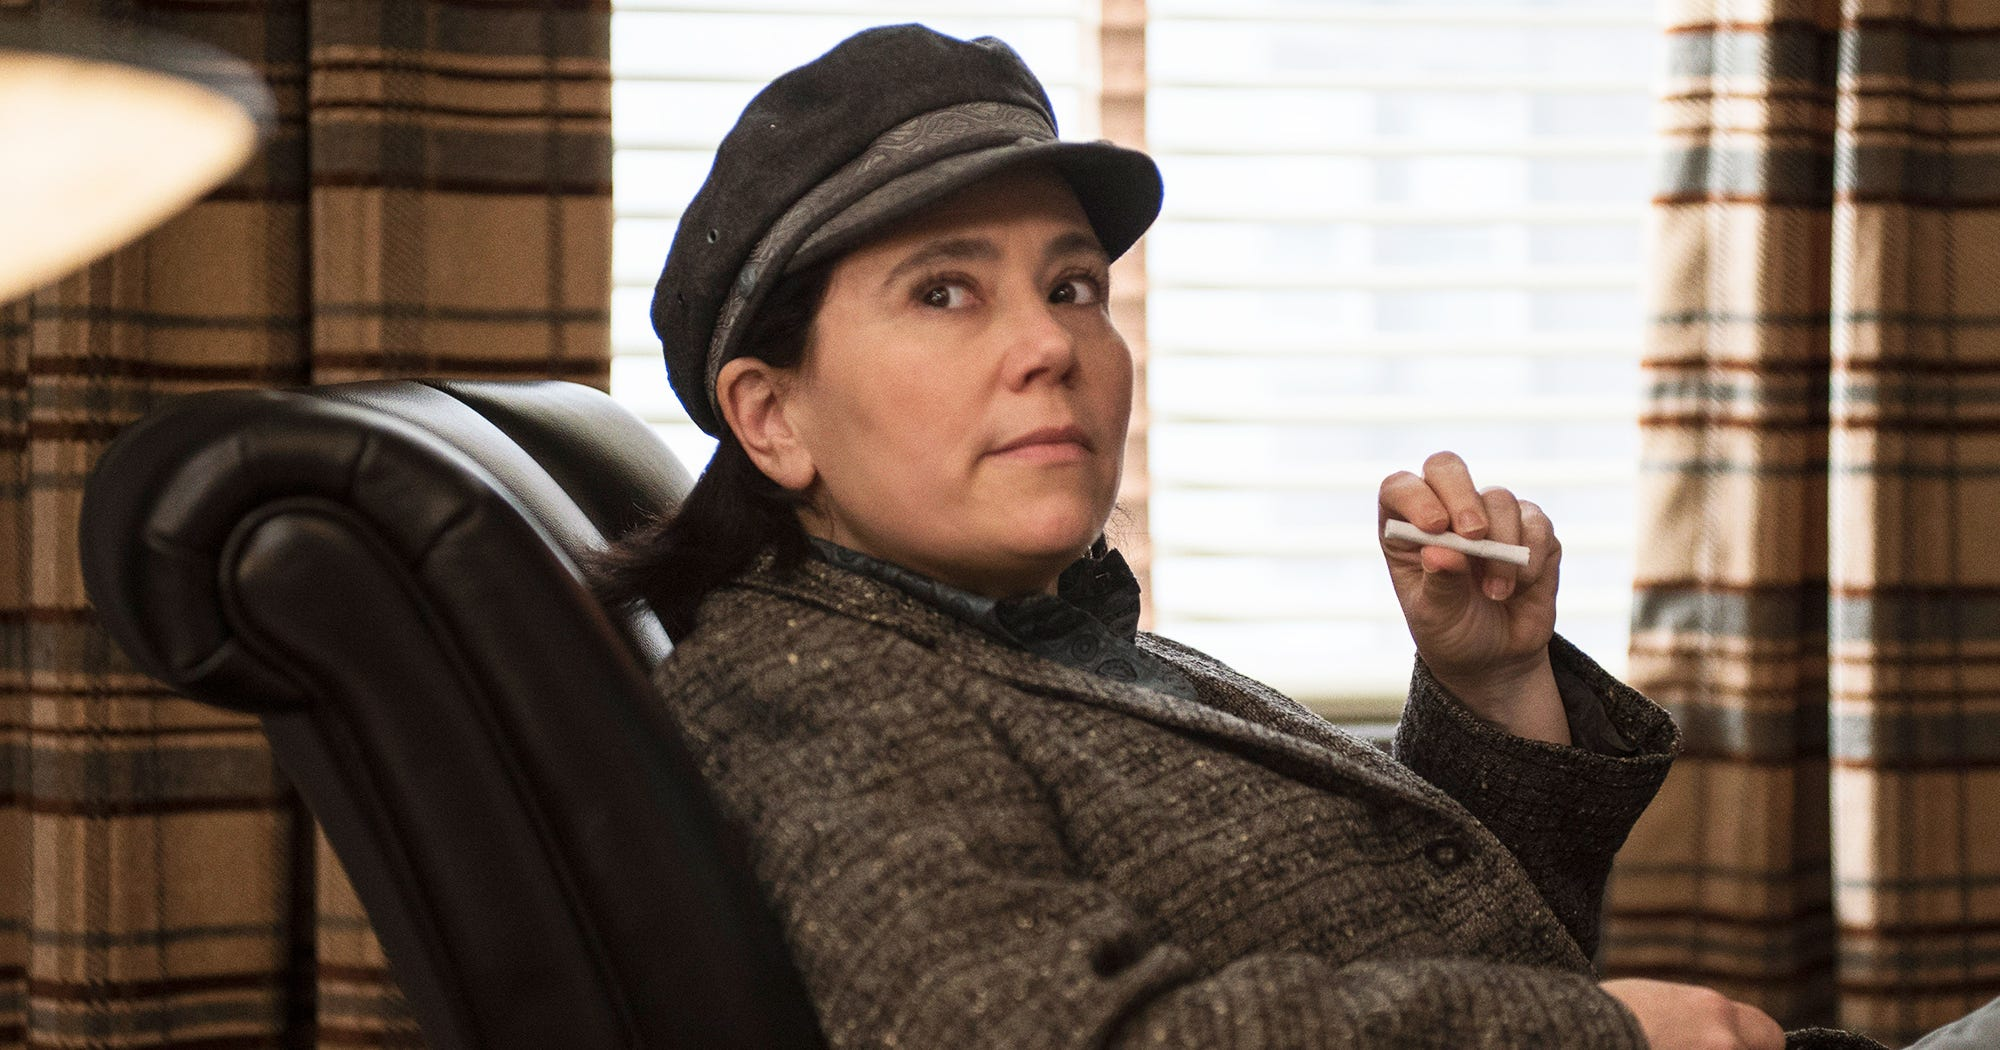 Marvelous Mrs Maisel Susie Is Based On This Real Person 0ec93cef72e